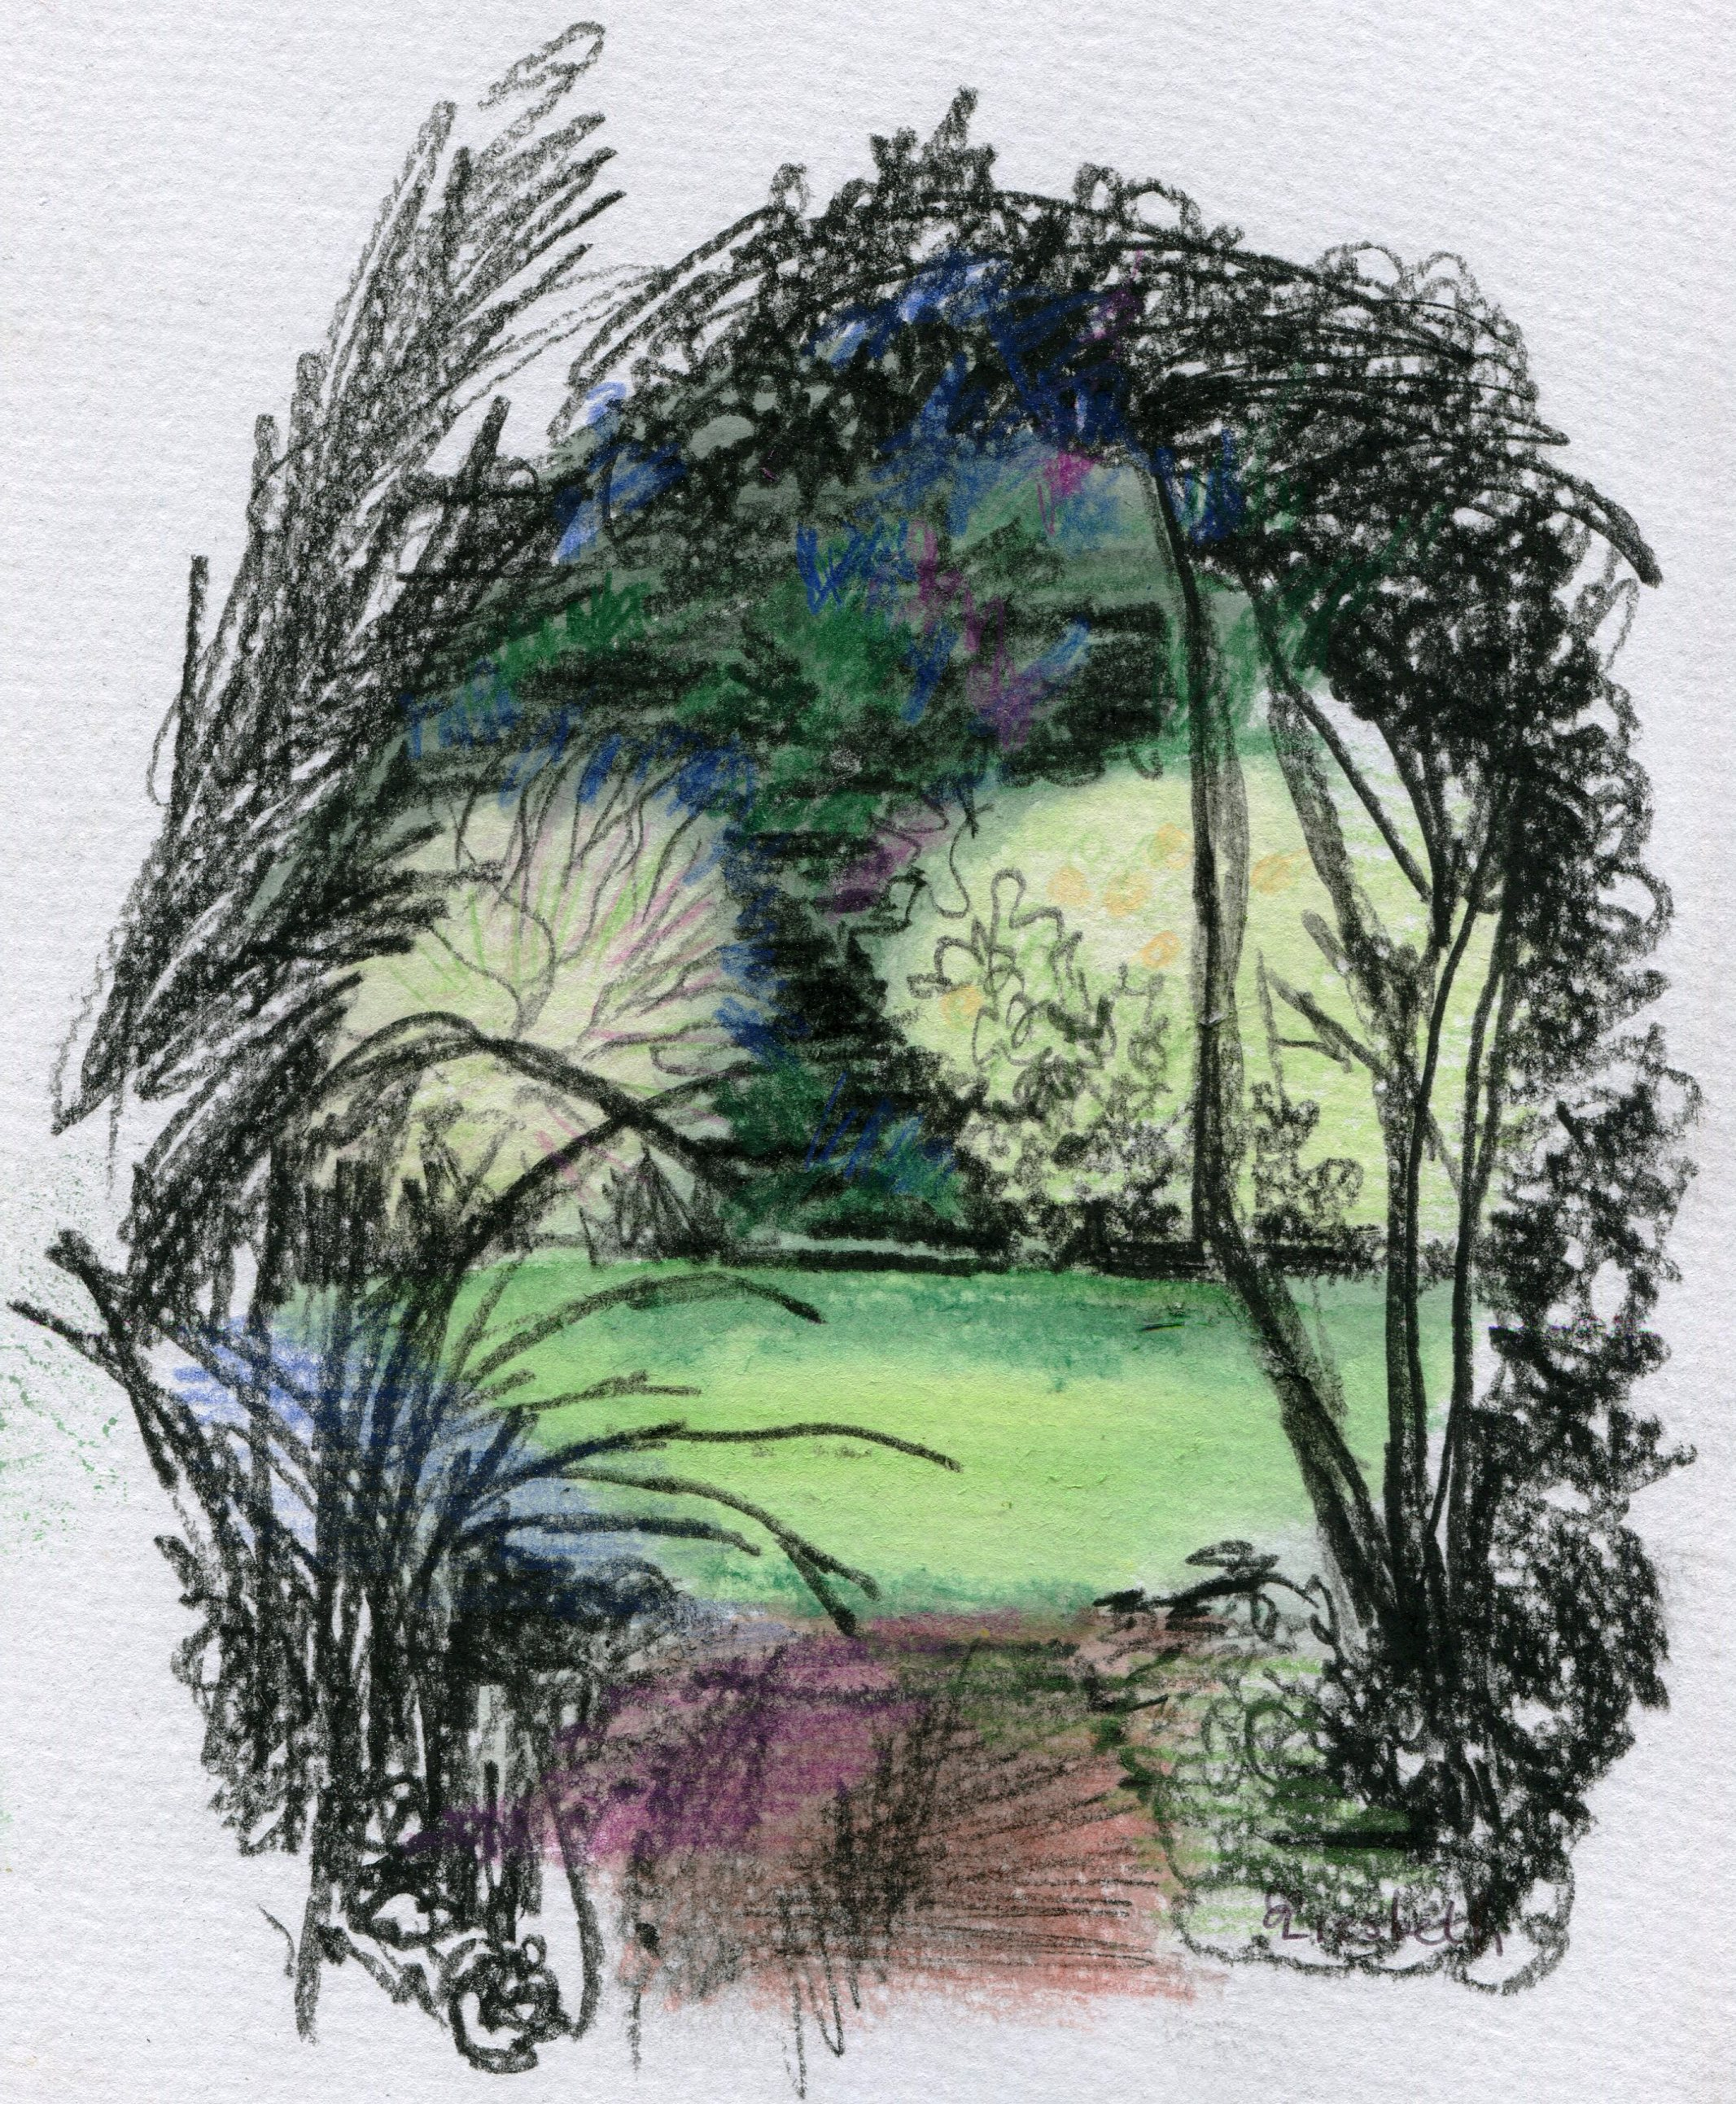 85A LIESBETH GROENEWALD, GARDEN'S EYE, WATERCOLOUR, PENCIL & CHARCOAL ON PAPER